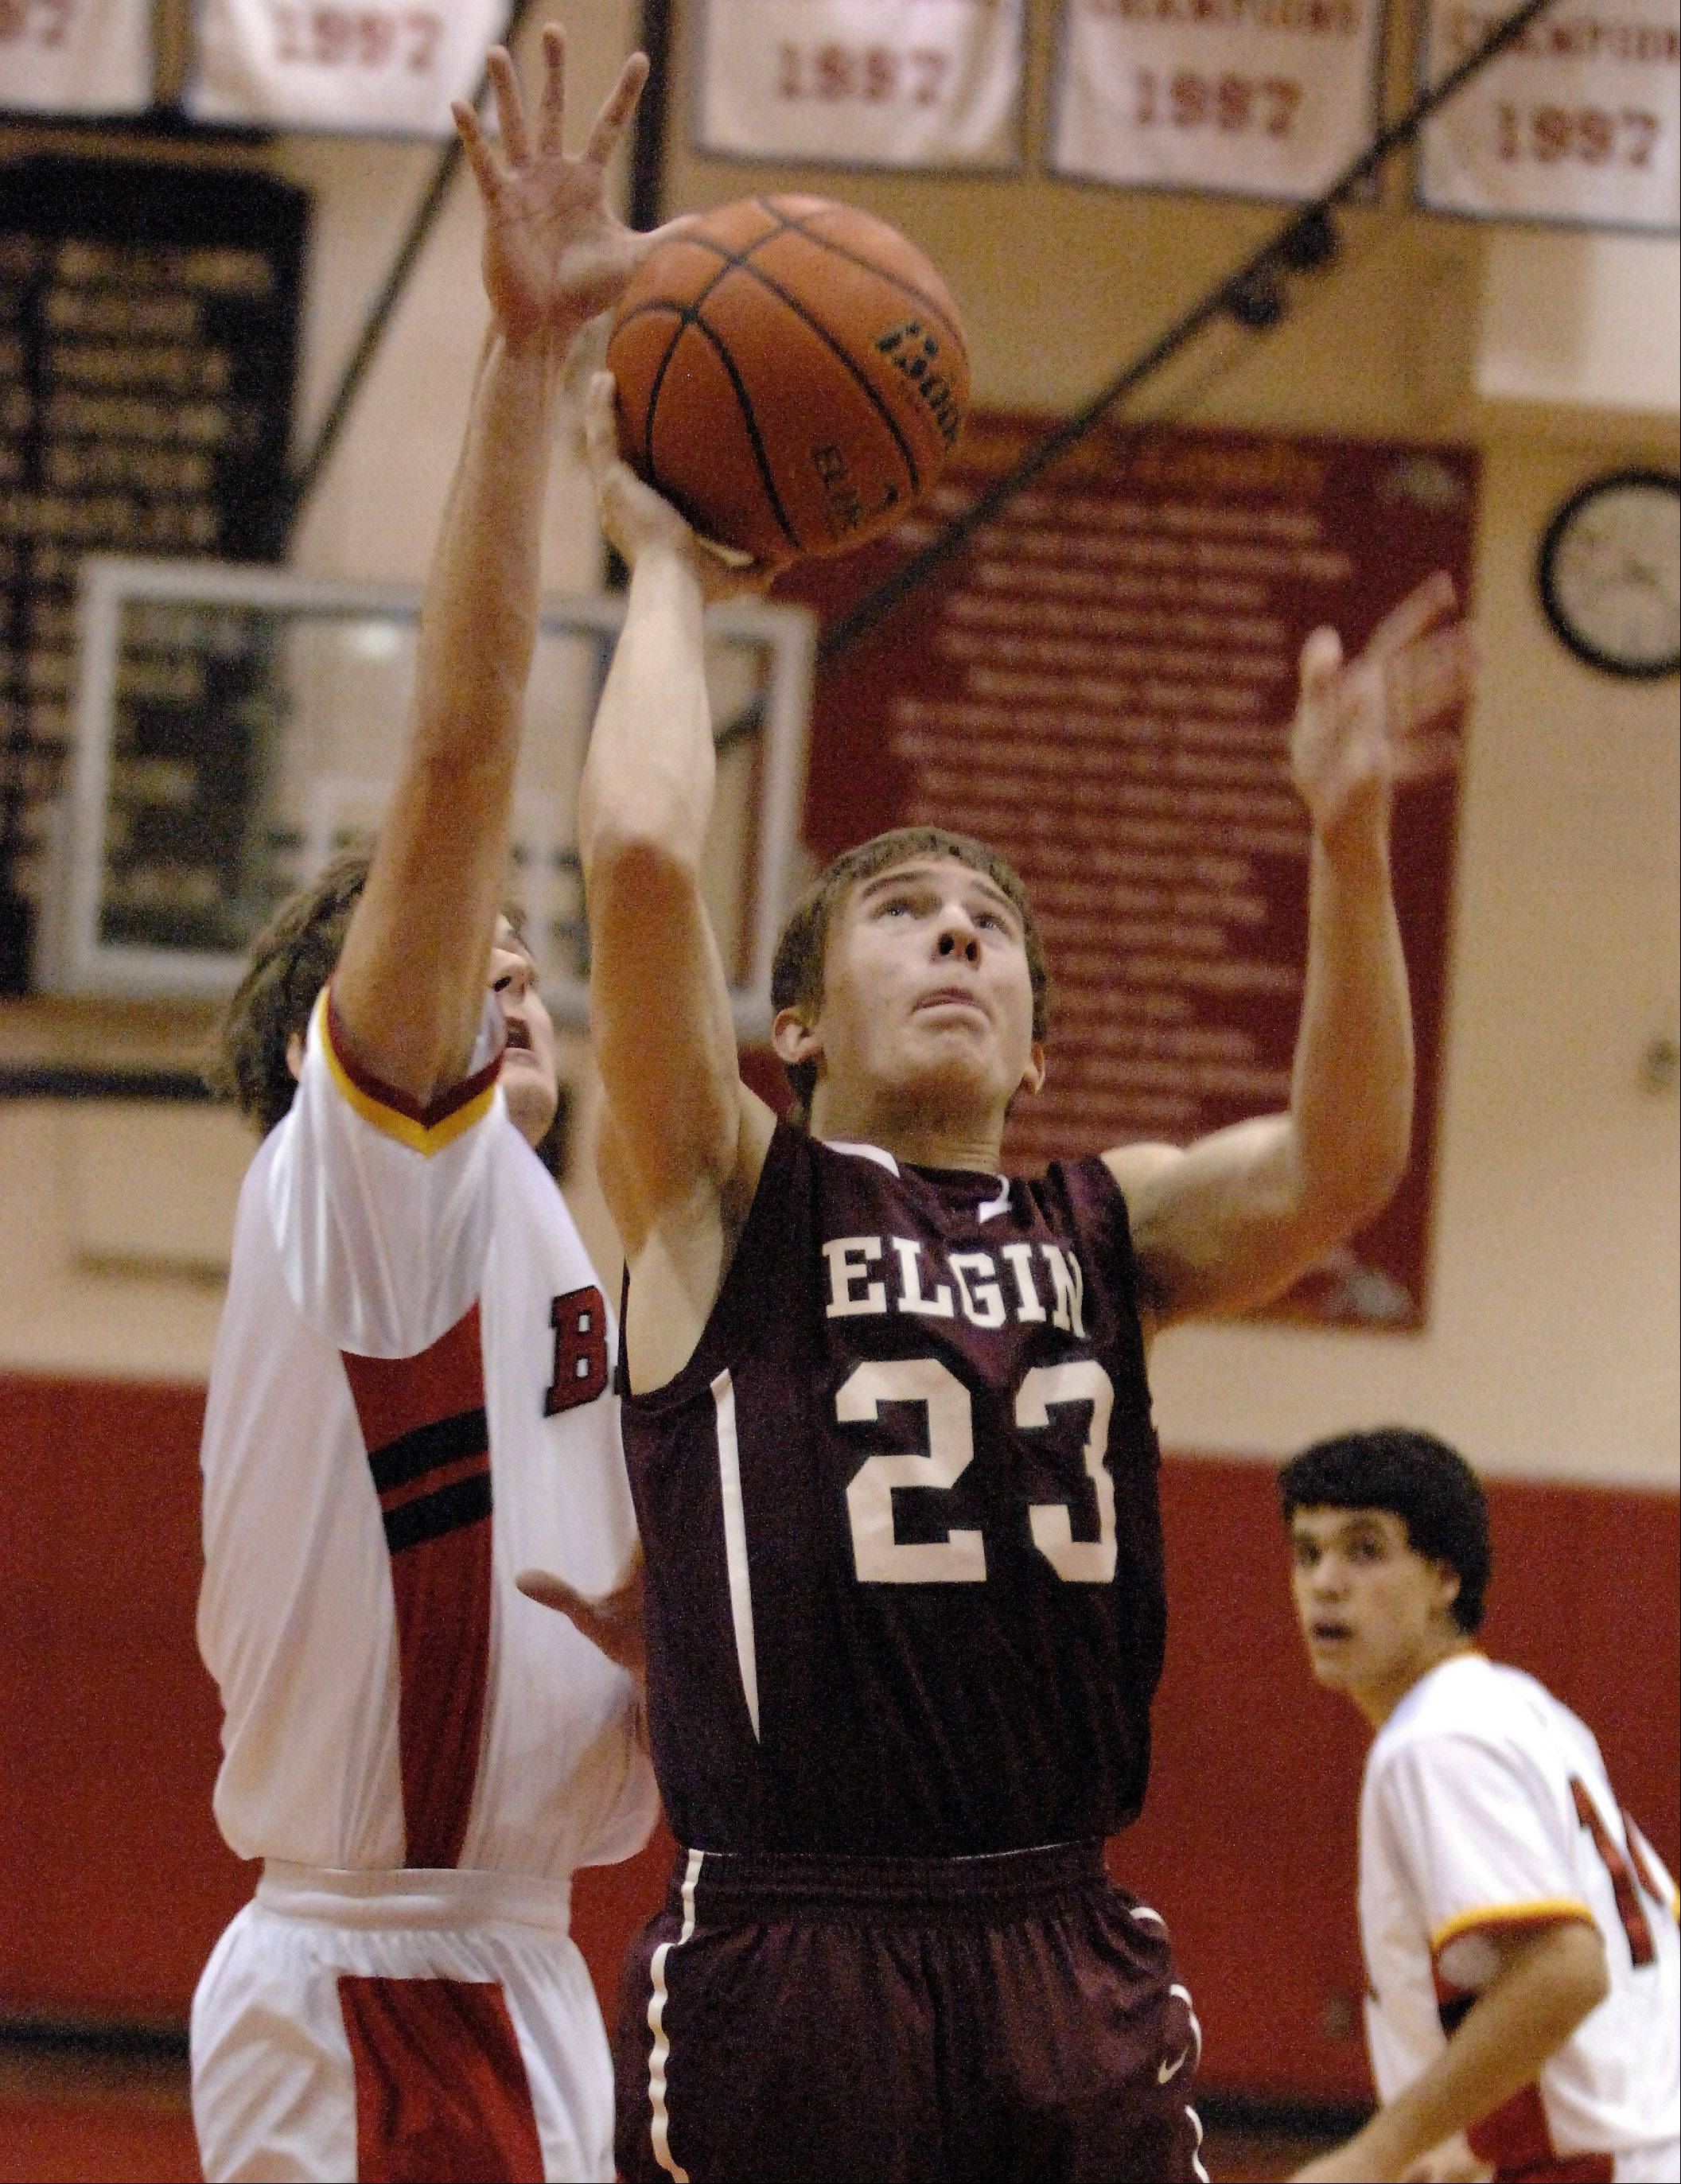 Batavia's Jake Pollack blocks a shot by Elgin's Tanner Bednar.